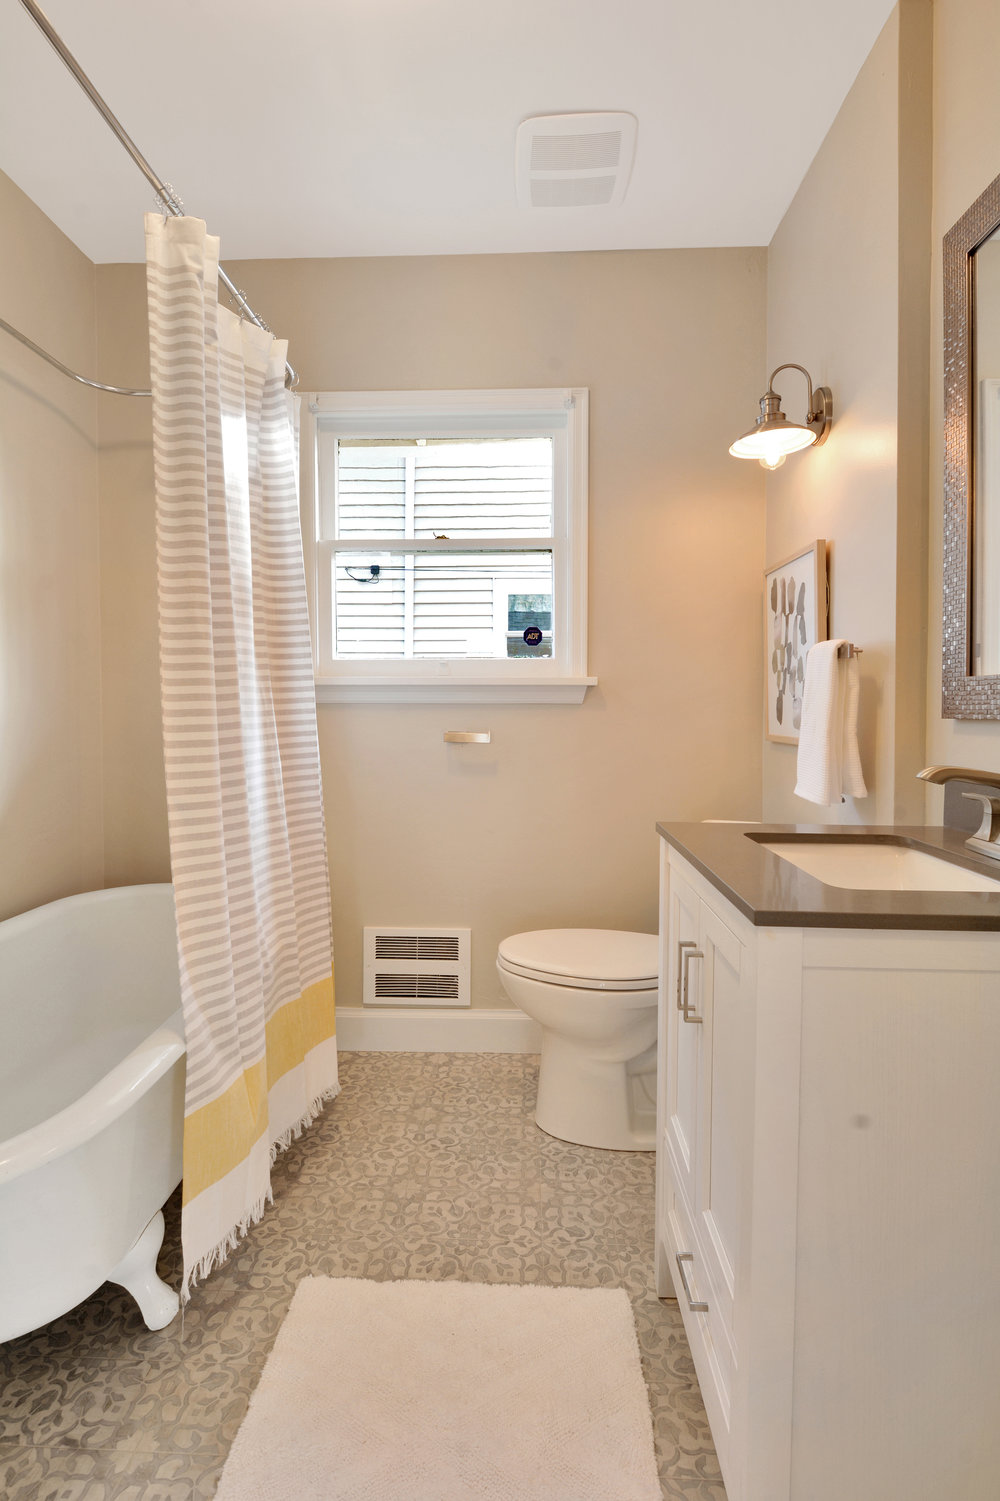 The full bath, located between the two main floor bedrooms, features a claw foot tub, brand new vinyl floor, and a vanity with undermount sink and cupboard below. A linen closet just outside the door offers additional storage.